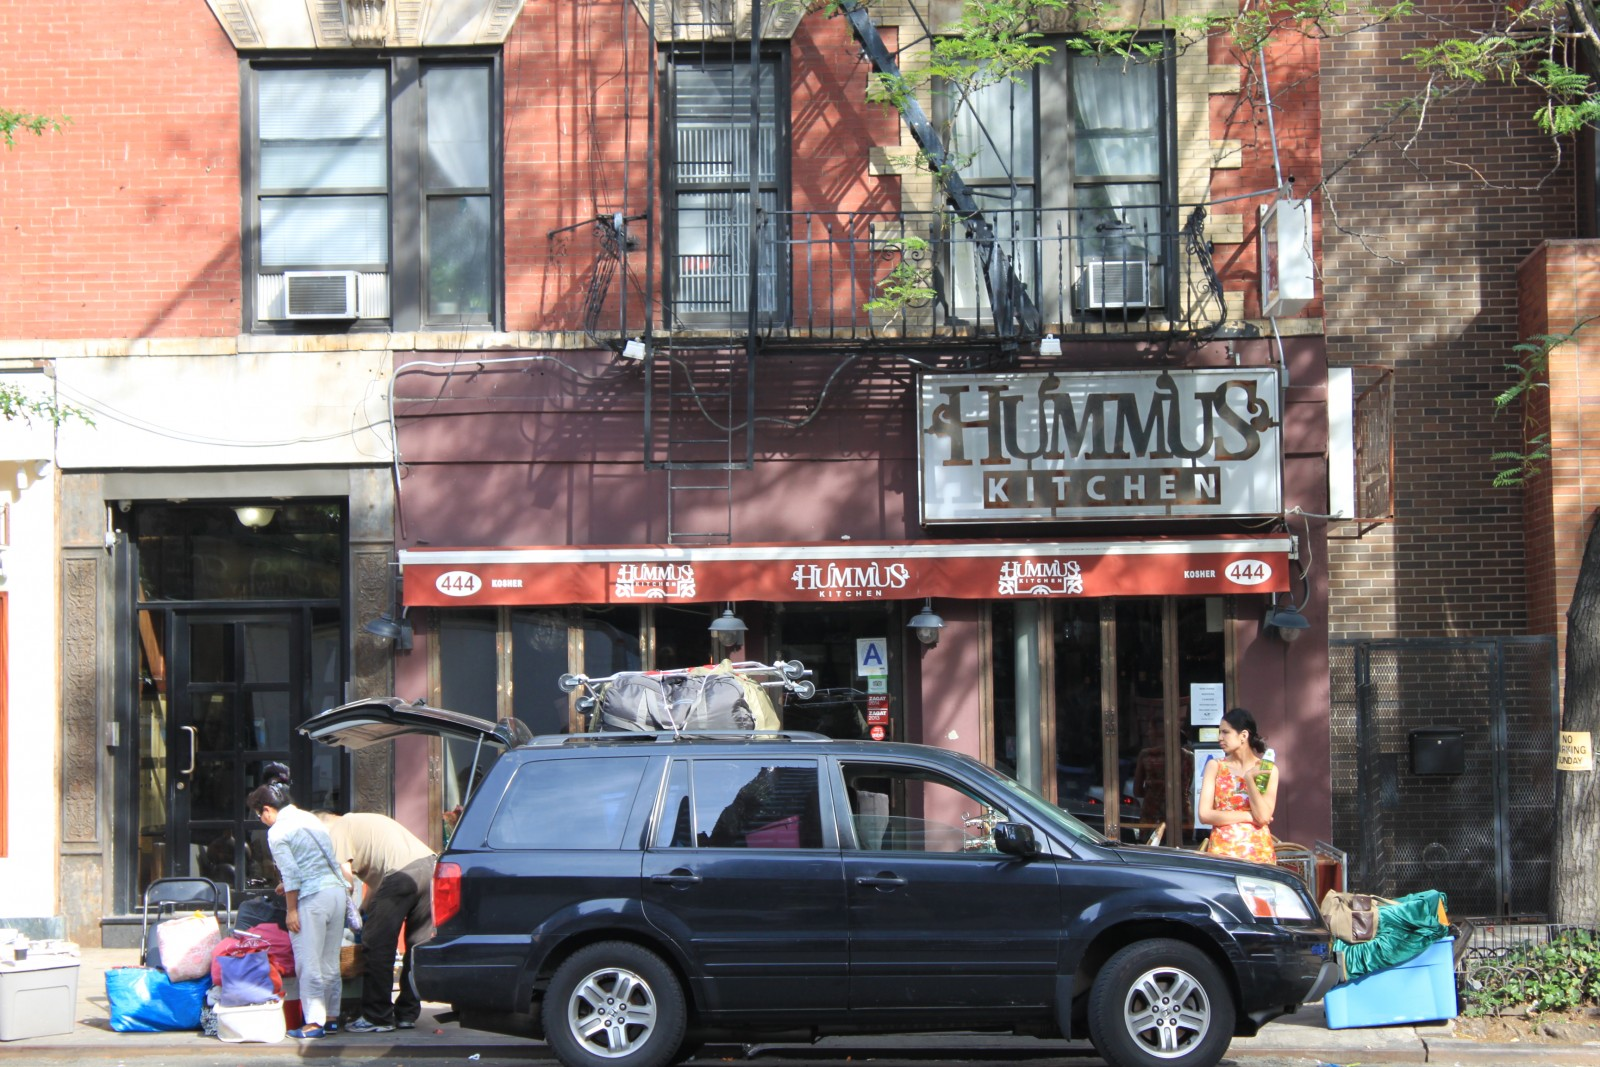 Hummus Kitchen 444 3rd Avenue New York, NY 10016 on 4URSPACE ...